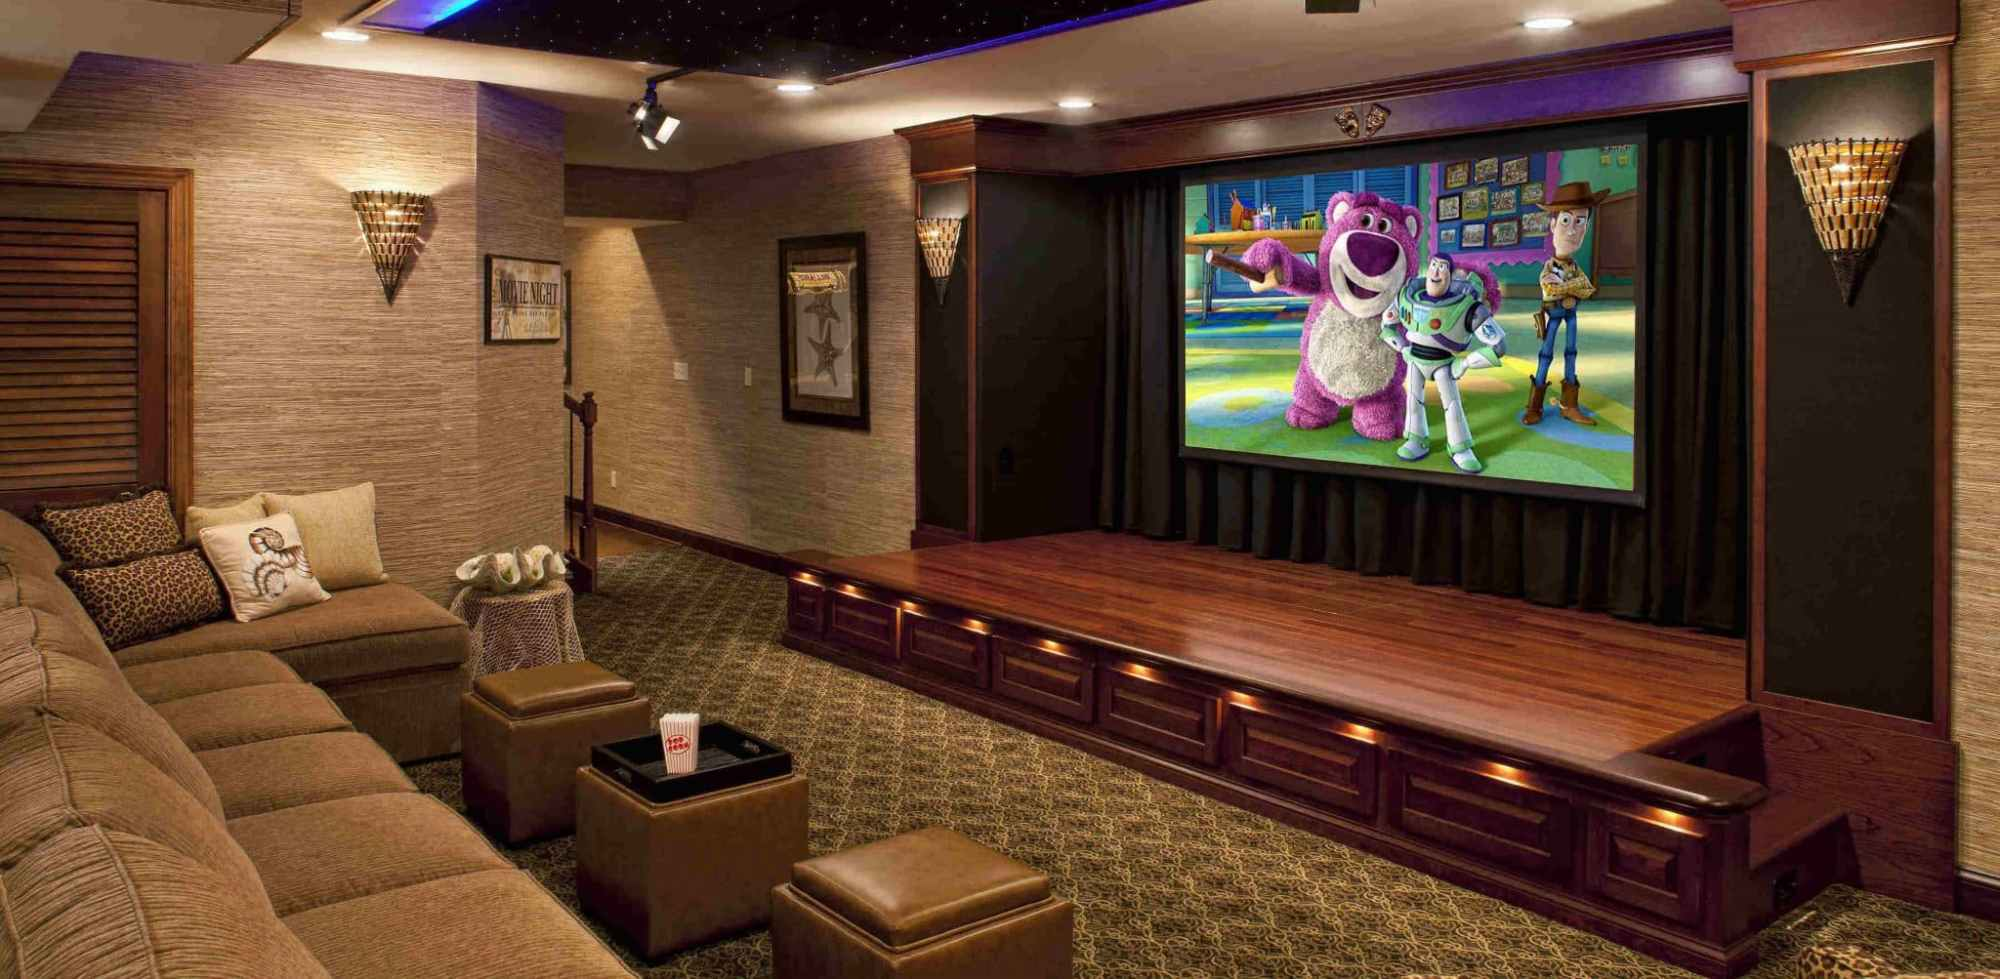 hight resolution of home theater installation indianapolis home theater setup indiana surround system setup 46234 zinga s home solutions